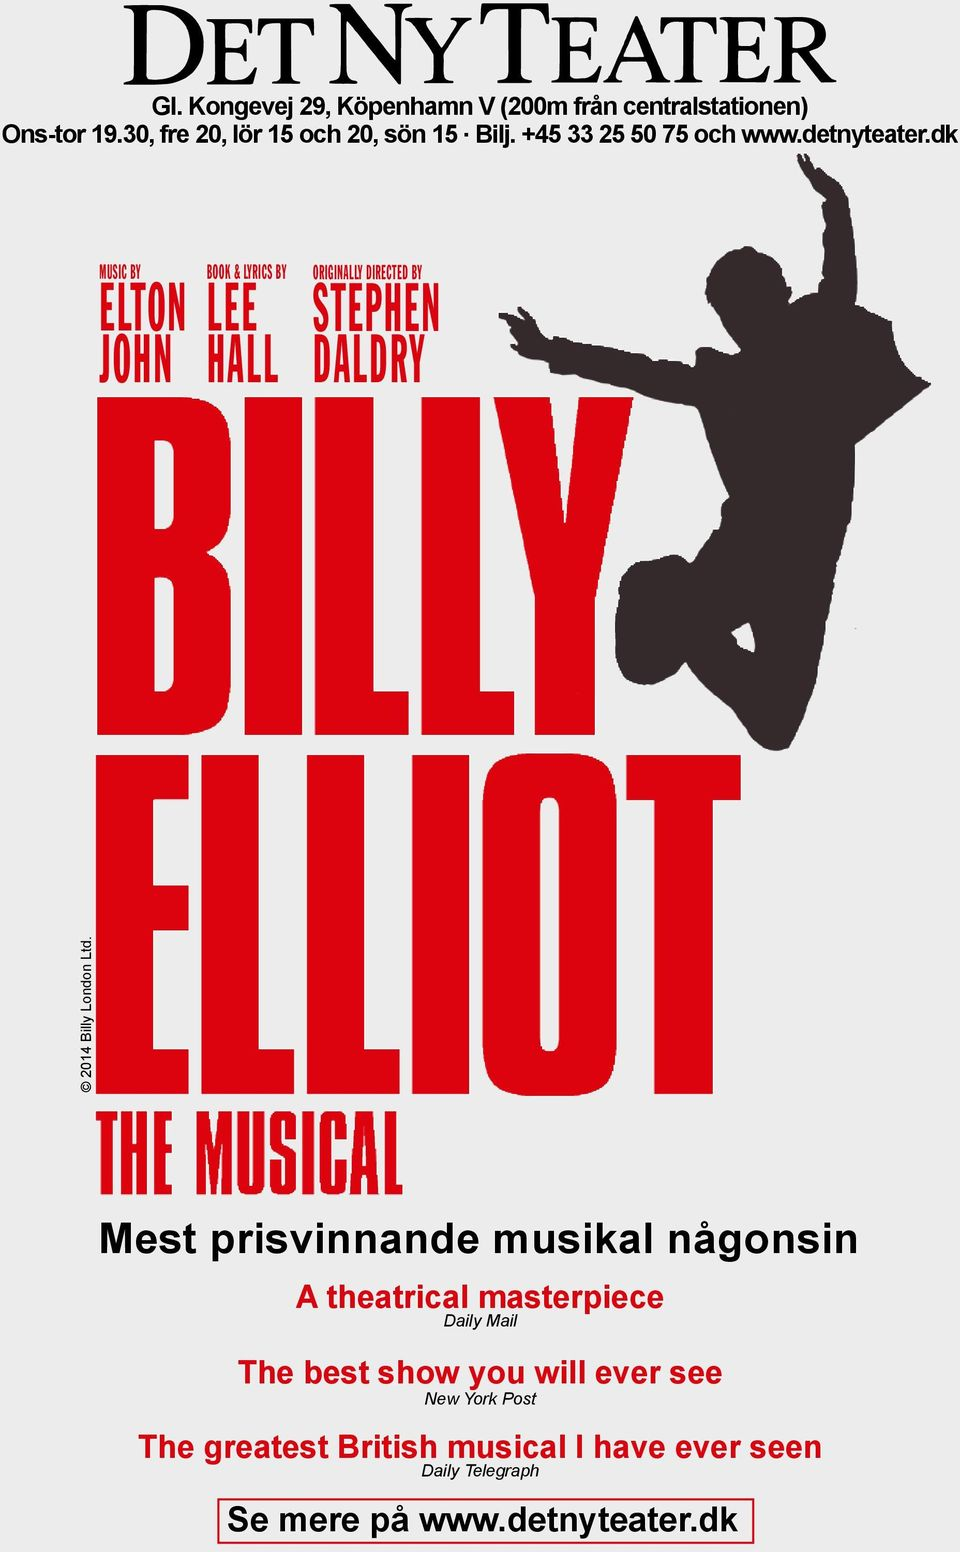 dk MUSIC BY ELTON JOHN BOOK & LYRICS BY LEE HALL ORIGINALLY DIRECTED BY STEPHEN DALDRY 2014 Billy London Ltd.